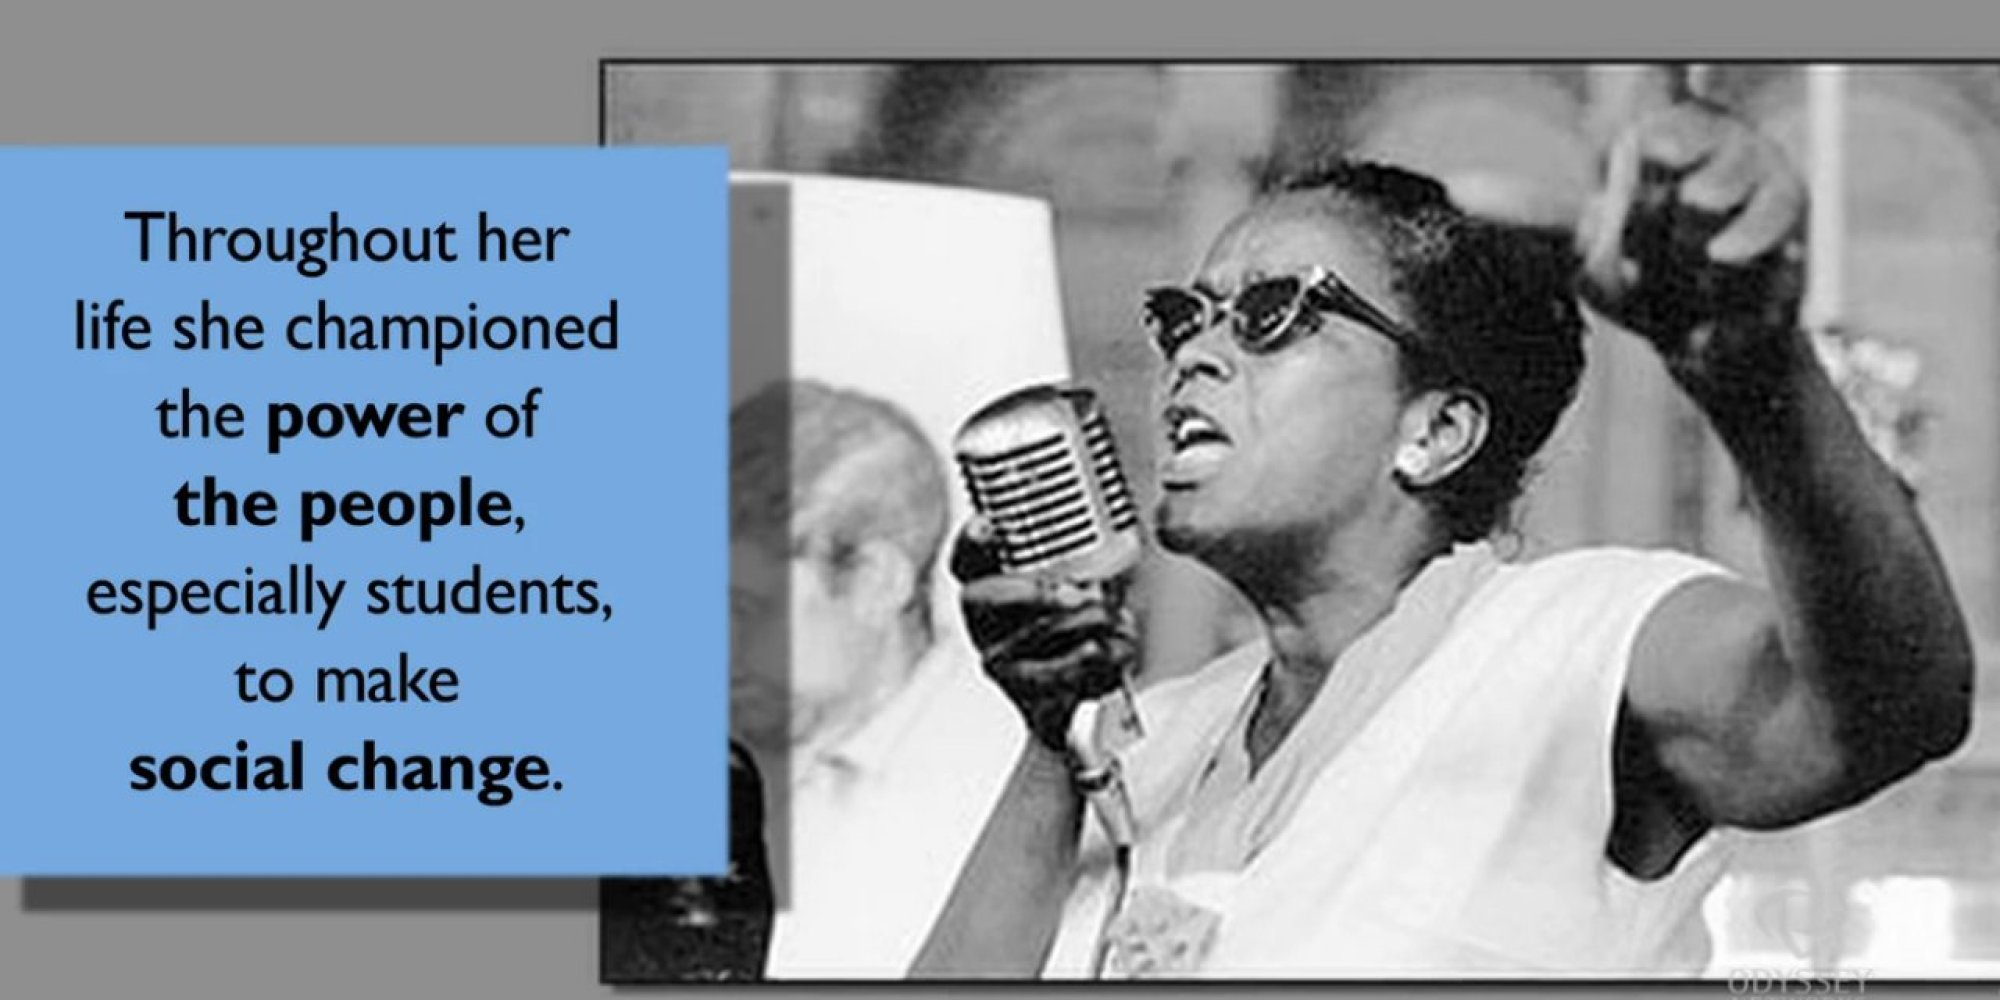 the life and work of ella baker 2017 reading challenge - a book about an interesting woman this biography of ella baker is engaging i knew of baker's work through other studies of history, this book offered a chance to learn about her work and ethos in an in depth personal manner since it was authored by one of her close friends.